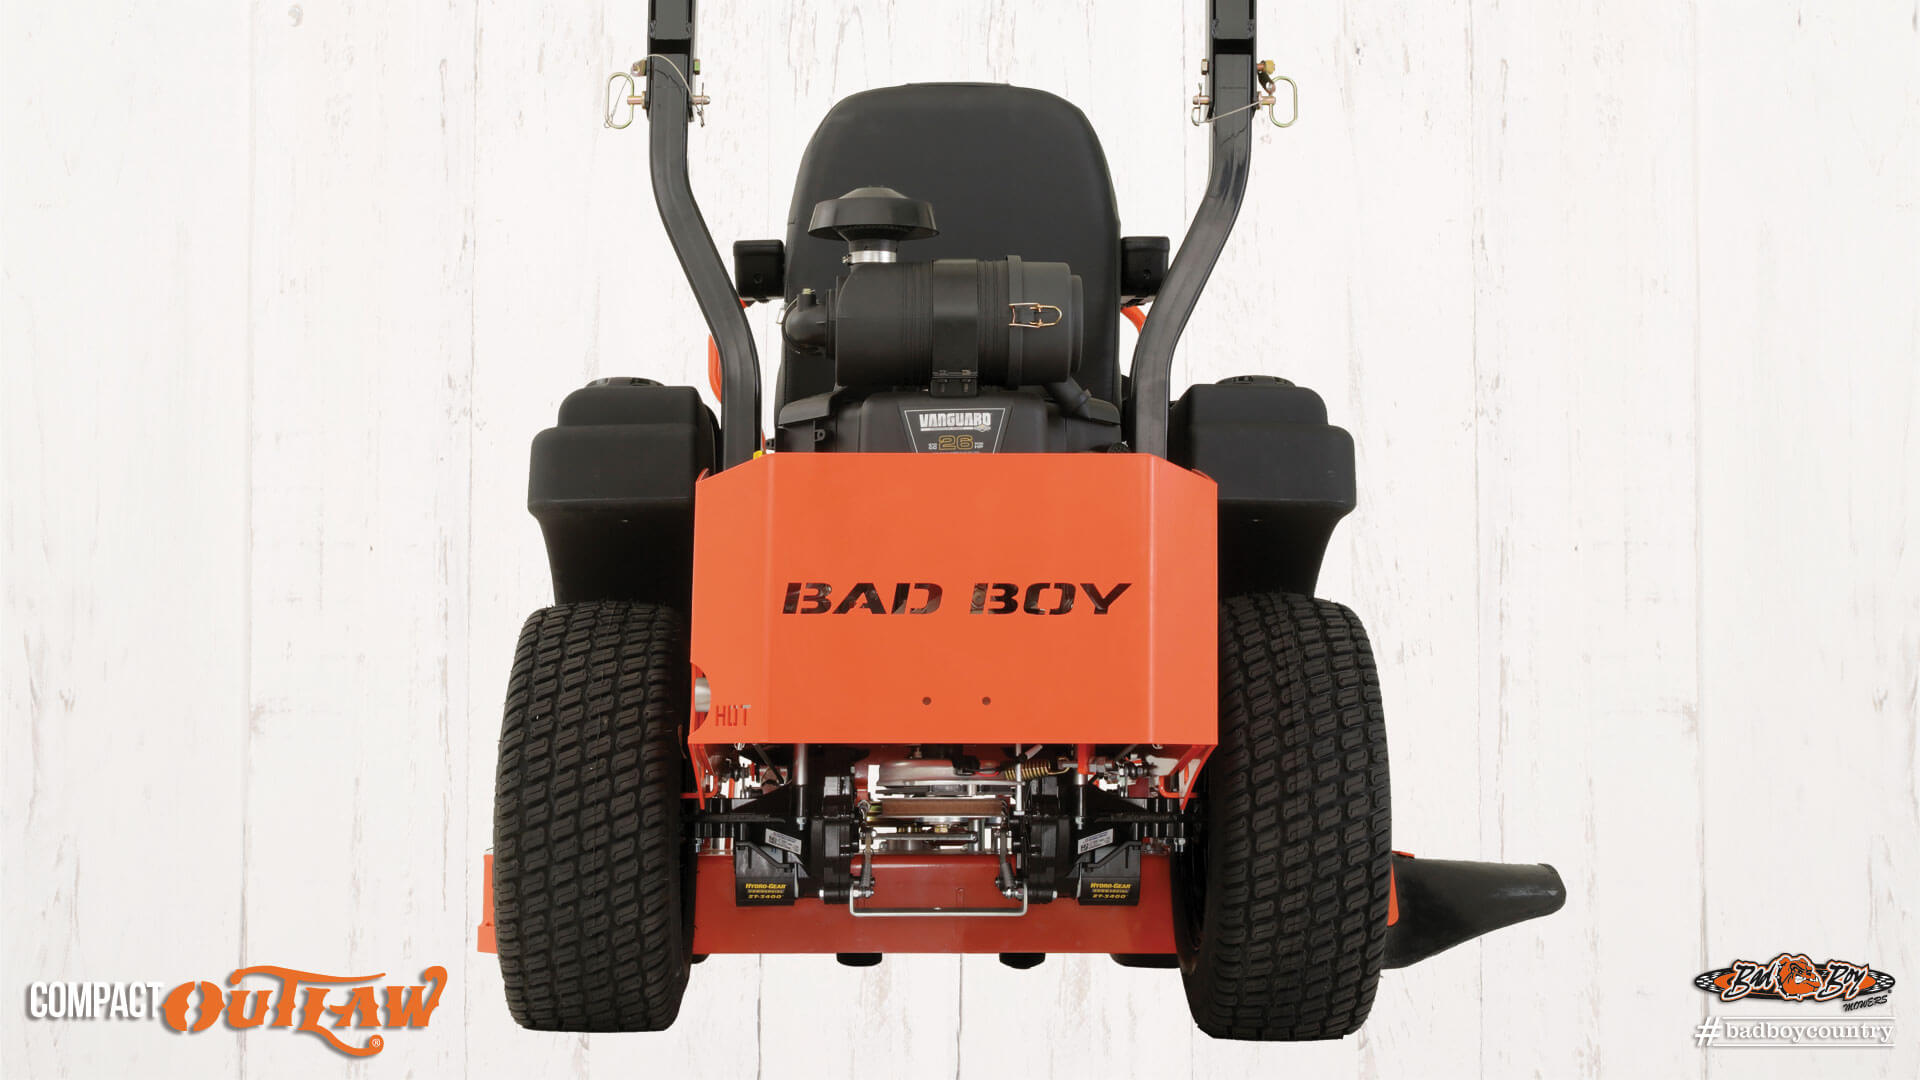 2017 Bad Boy Mowers 4200 (Kawasaki) Compact Outlaw in Sandpoint, Idaho